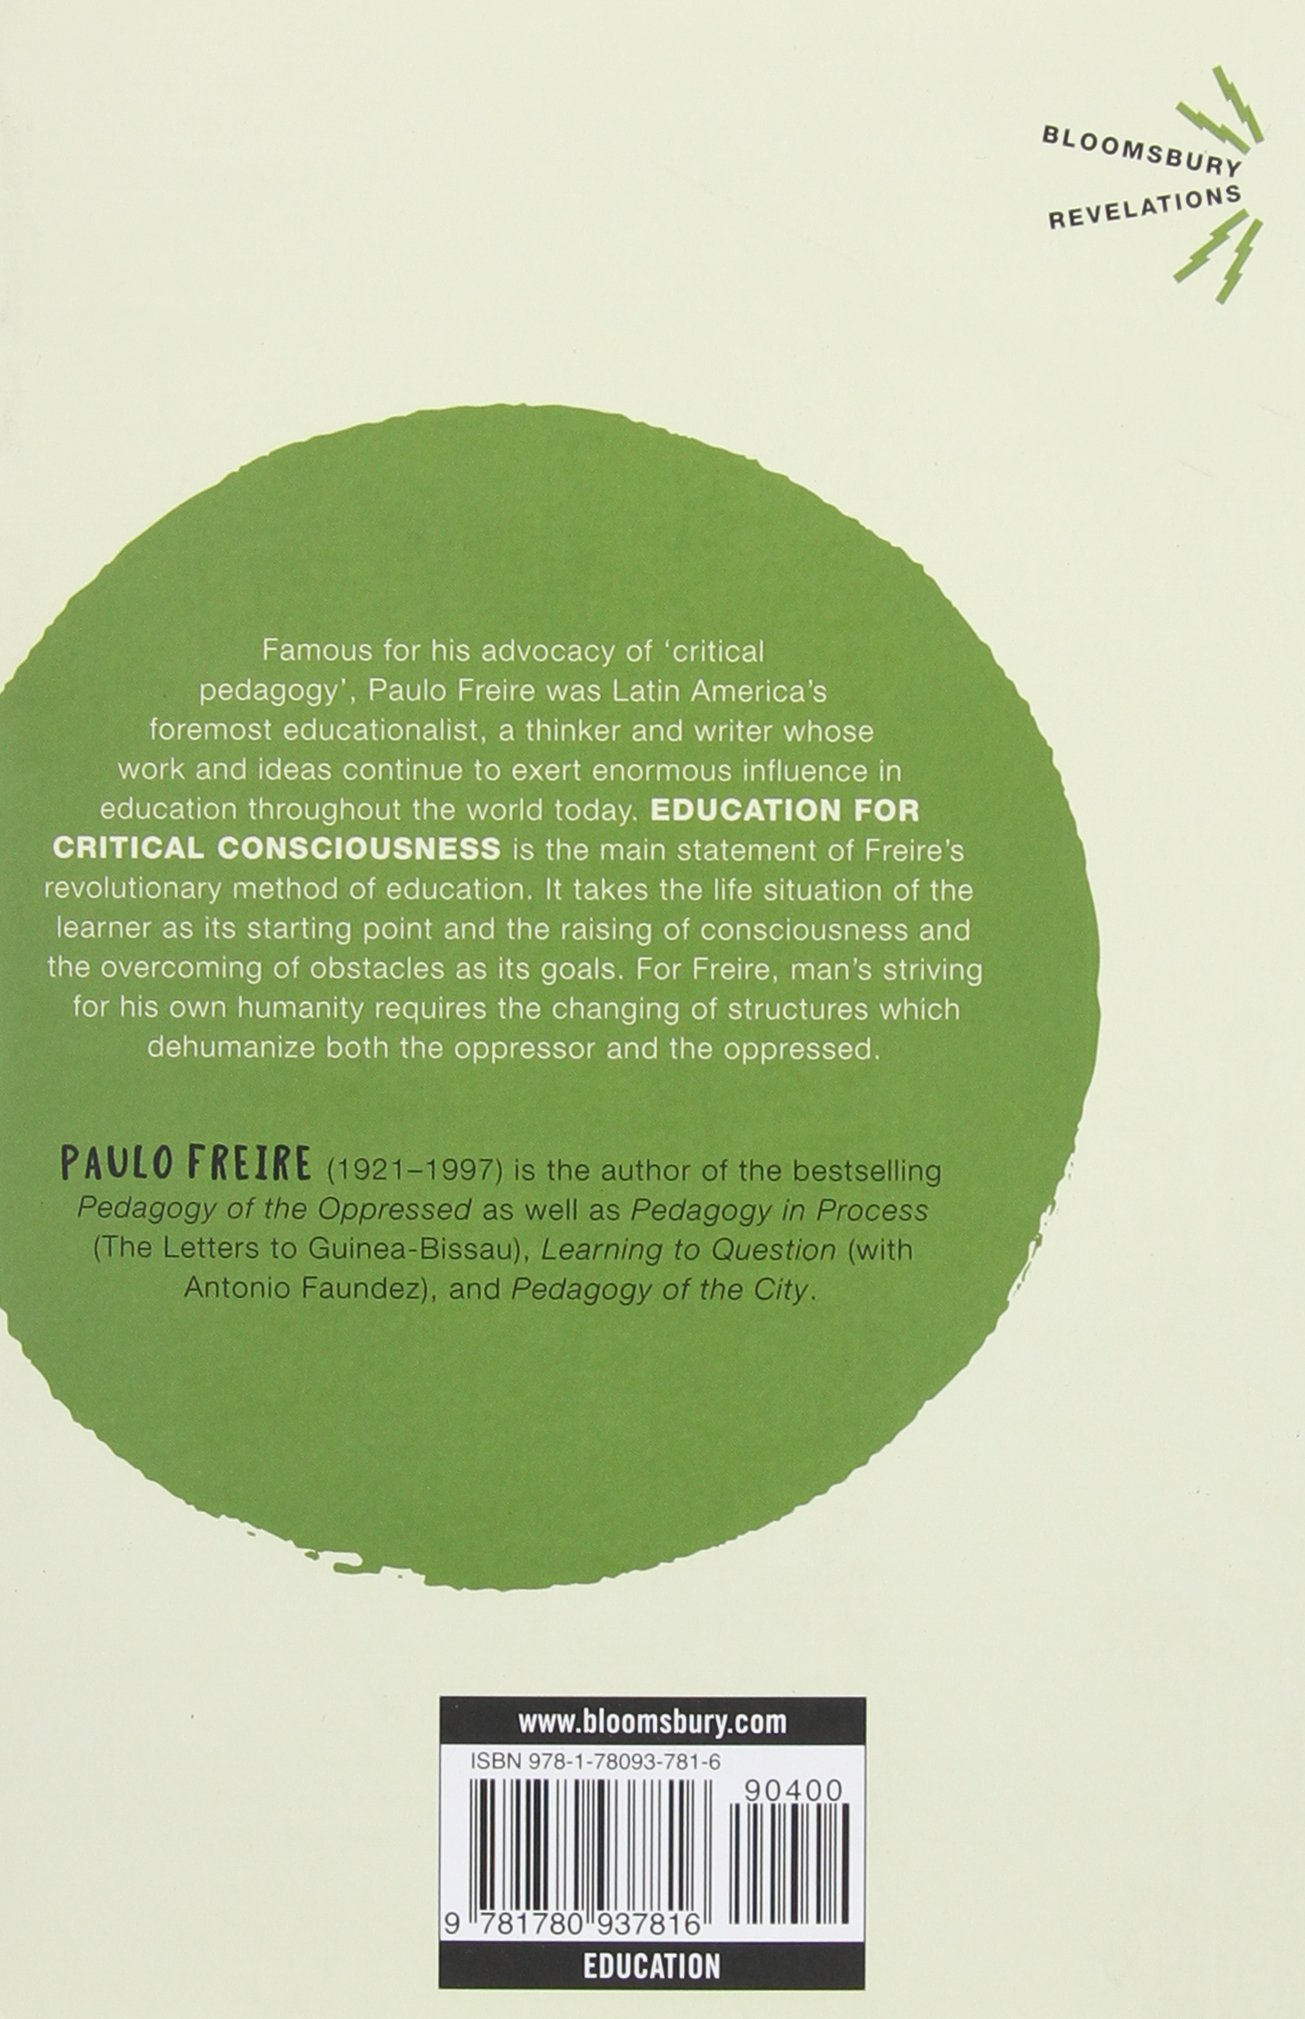 paulo freire paper Person-centered approach as conscientizaqdo: the works of carl rogers and paulo freire paper presented at the first international forum on the person-centered approach, oaxtapec, mexico google scholar: person-centered approach as conscientizacao.